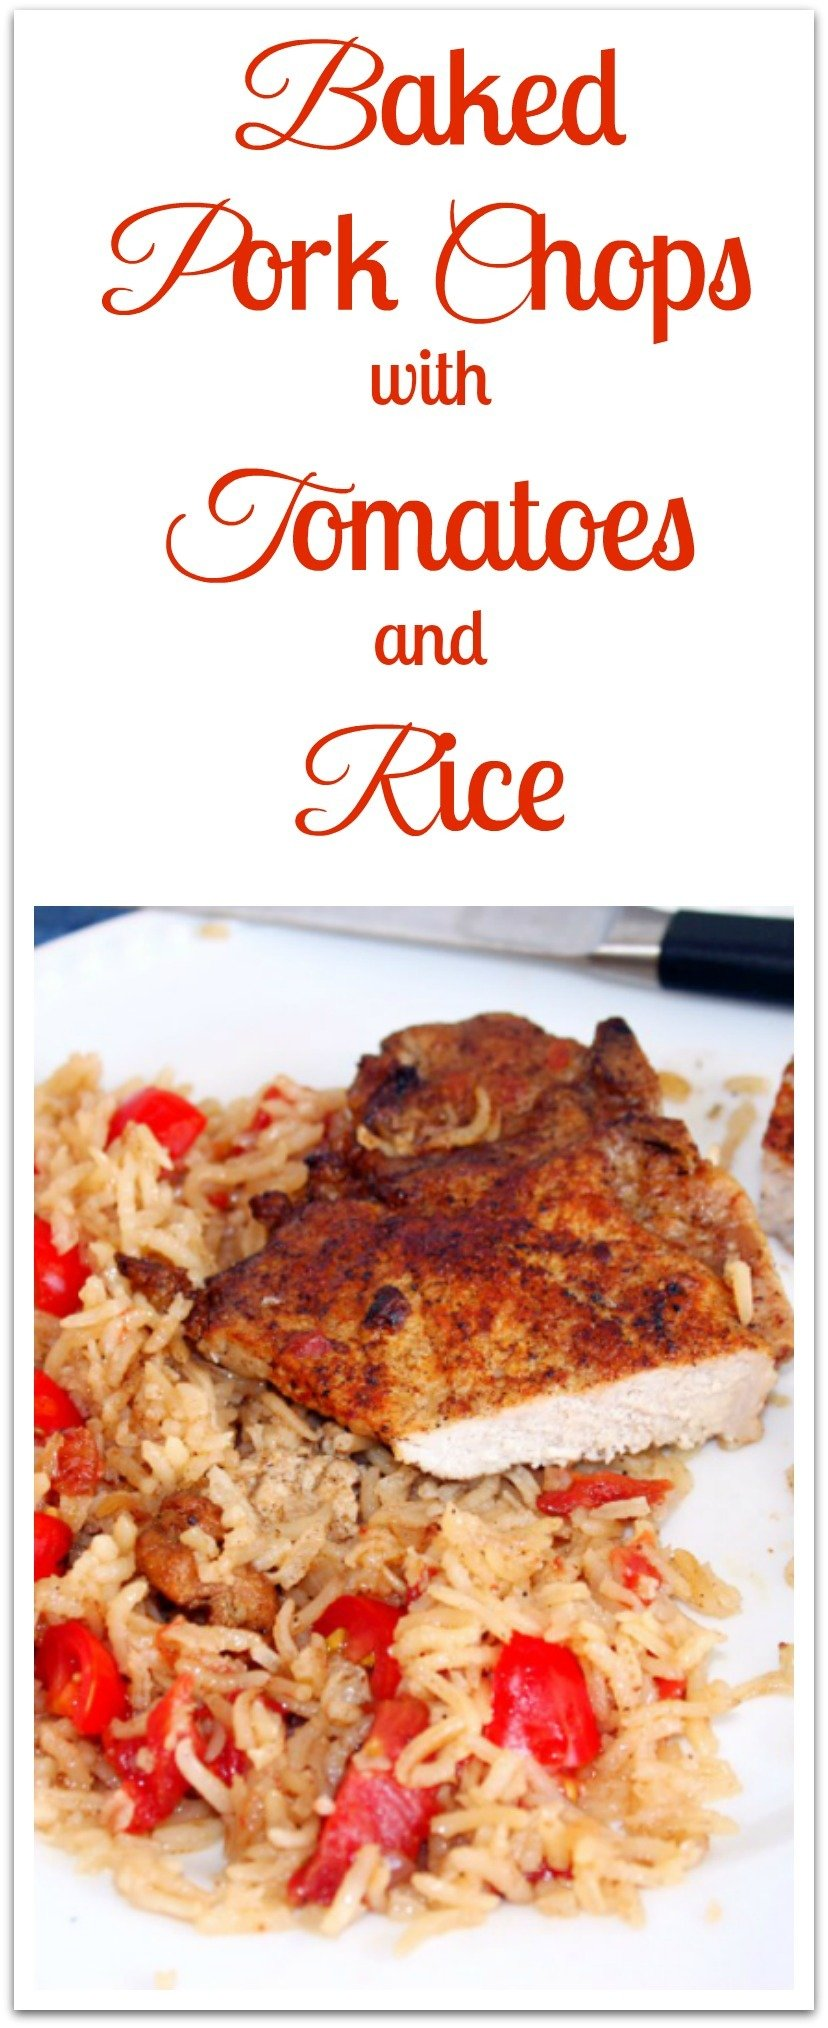 A one dish meal that goes on auto-pilot once it's put together and in the oven. The pork chops are tender and juicy and the rice is flavorful. #BakedPorkChops #TomatoesAndRice